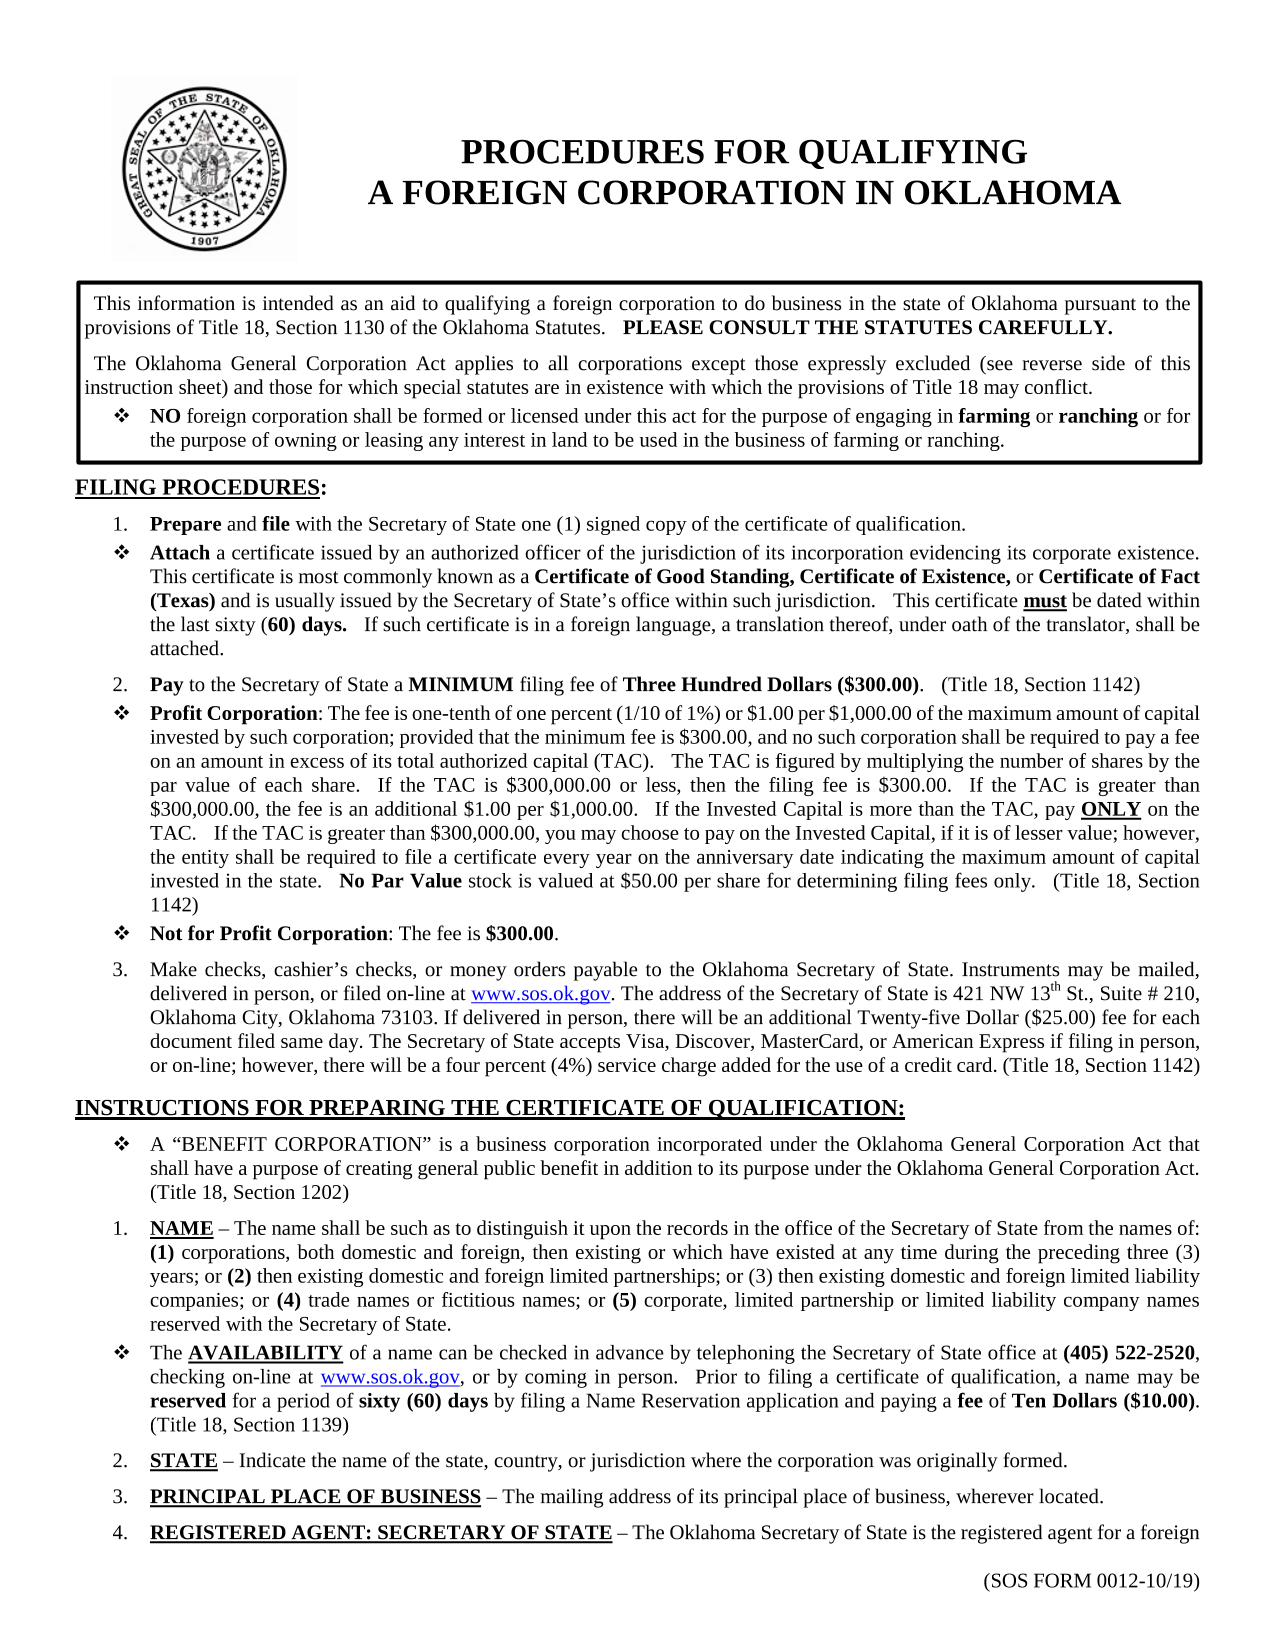 oklahoma-foreign-corporation-certificate-of-qualification-